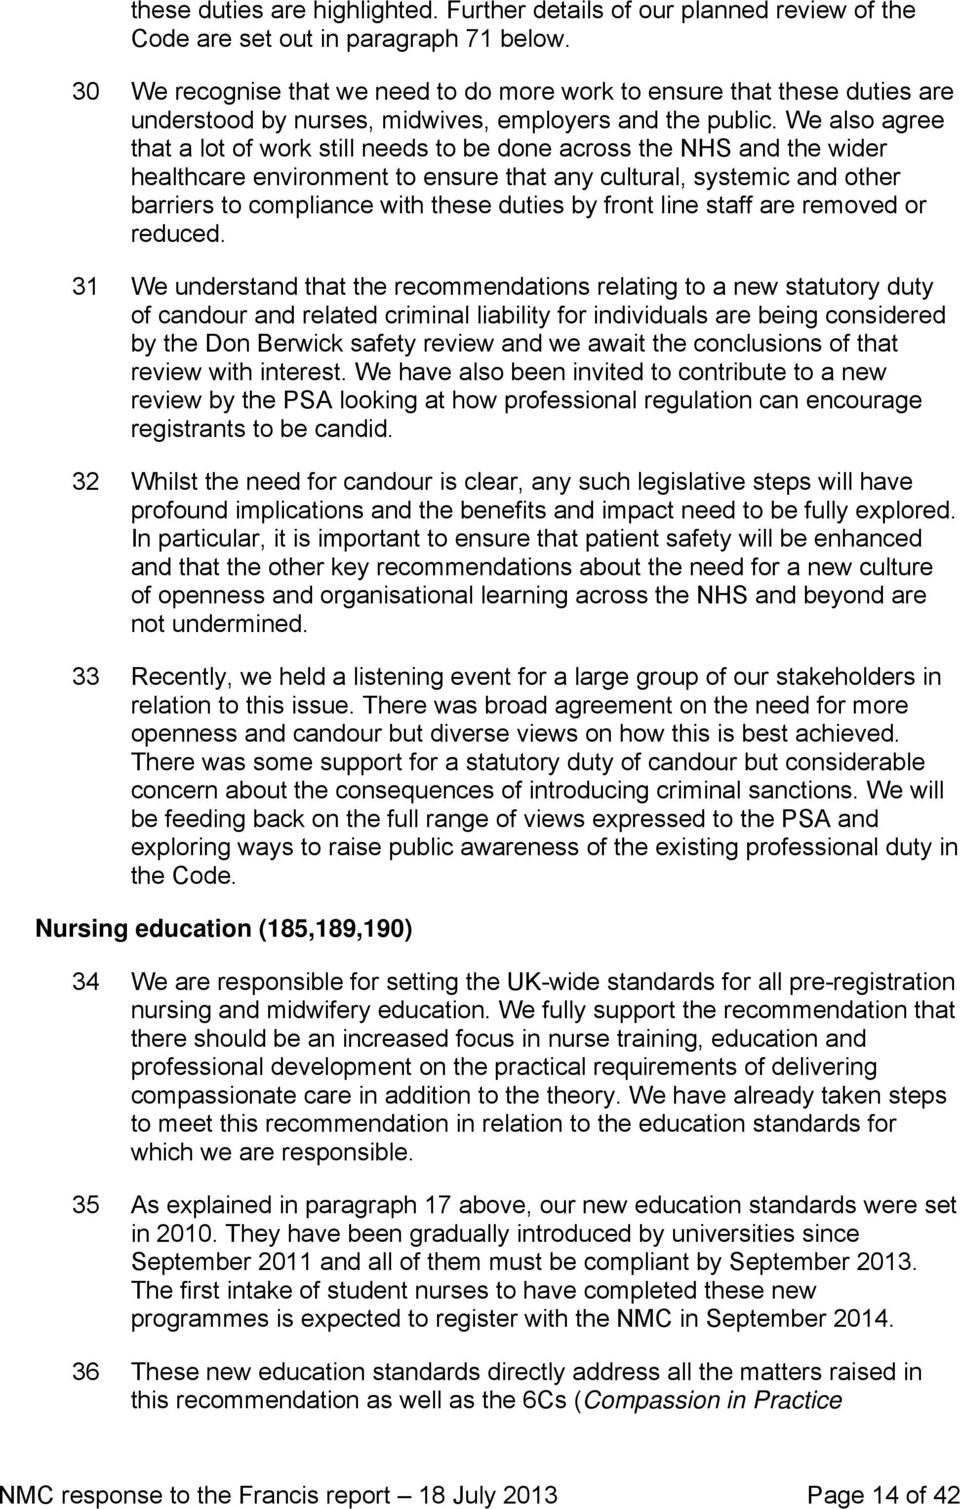 We also agree that a lot of work still needs to be done across the NHS and the wider healthcare environment to ensure that any cultural, systemic and other barriers to compliance with these duties by